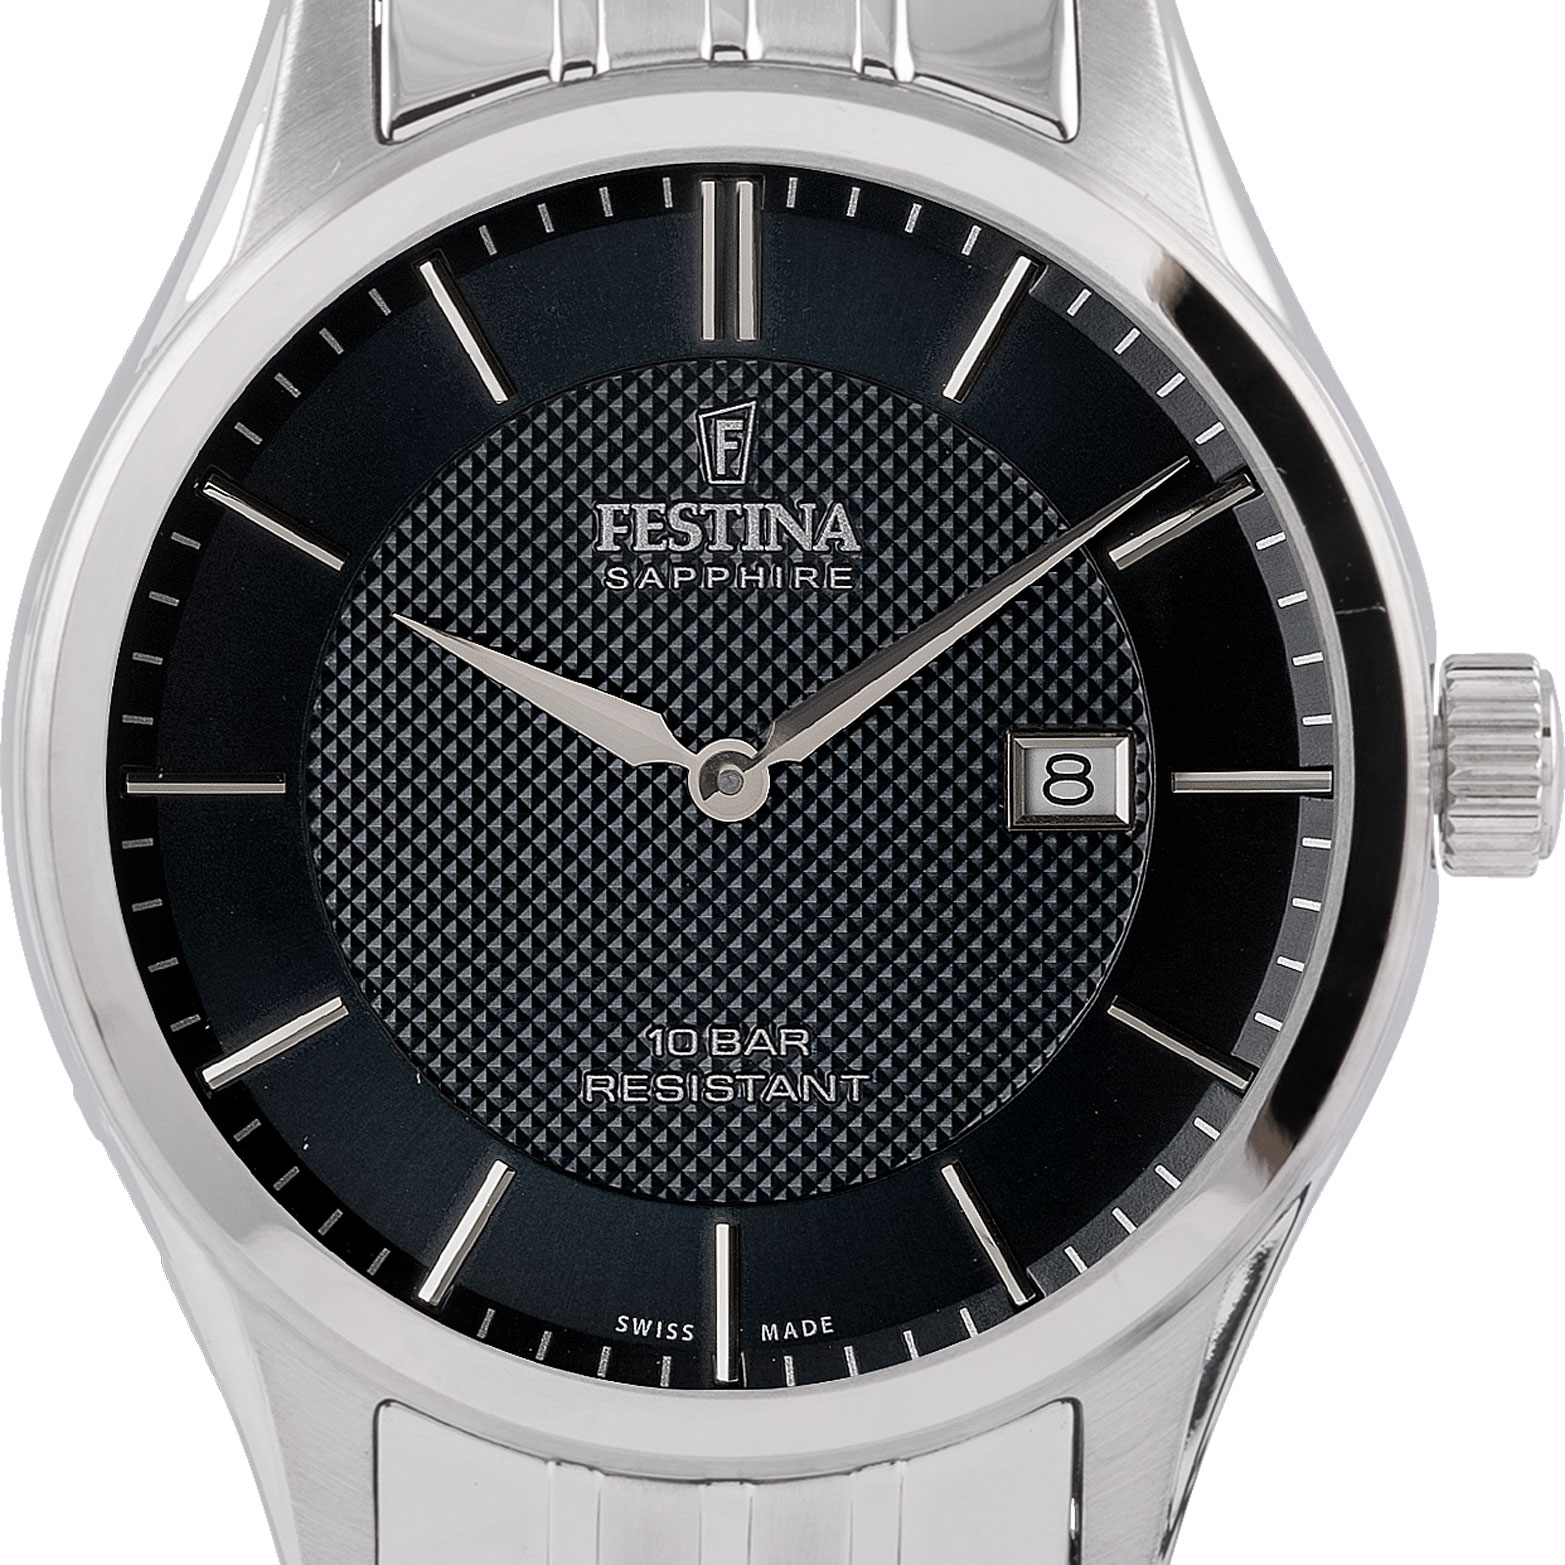 Festina Swiss Made Damklocka F200064